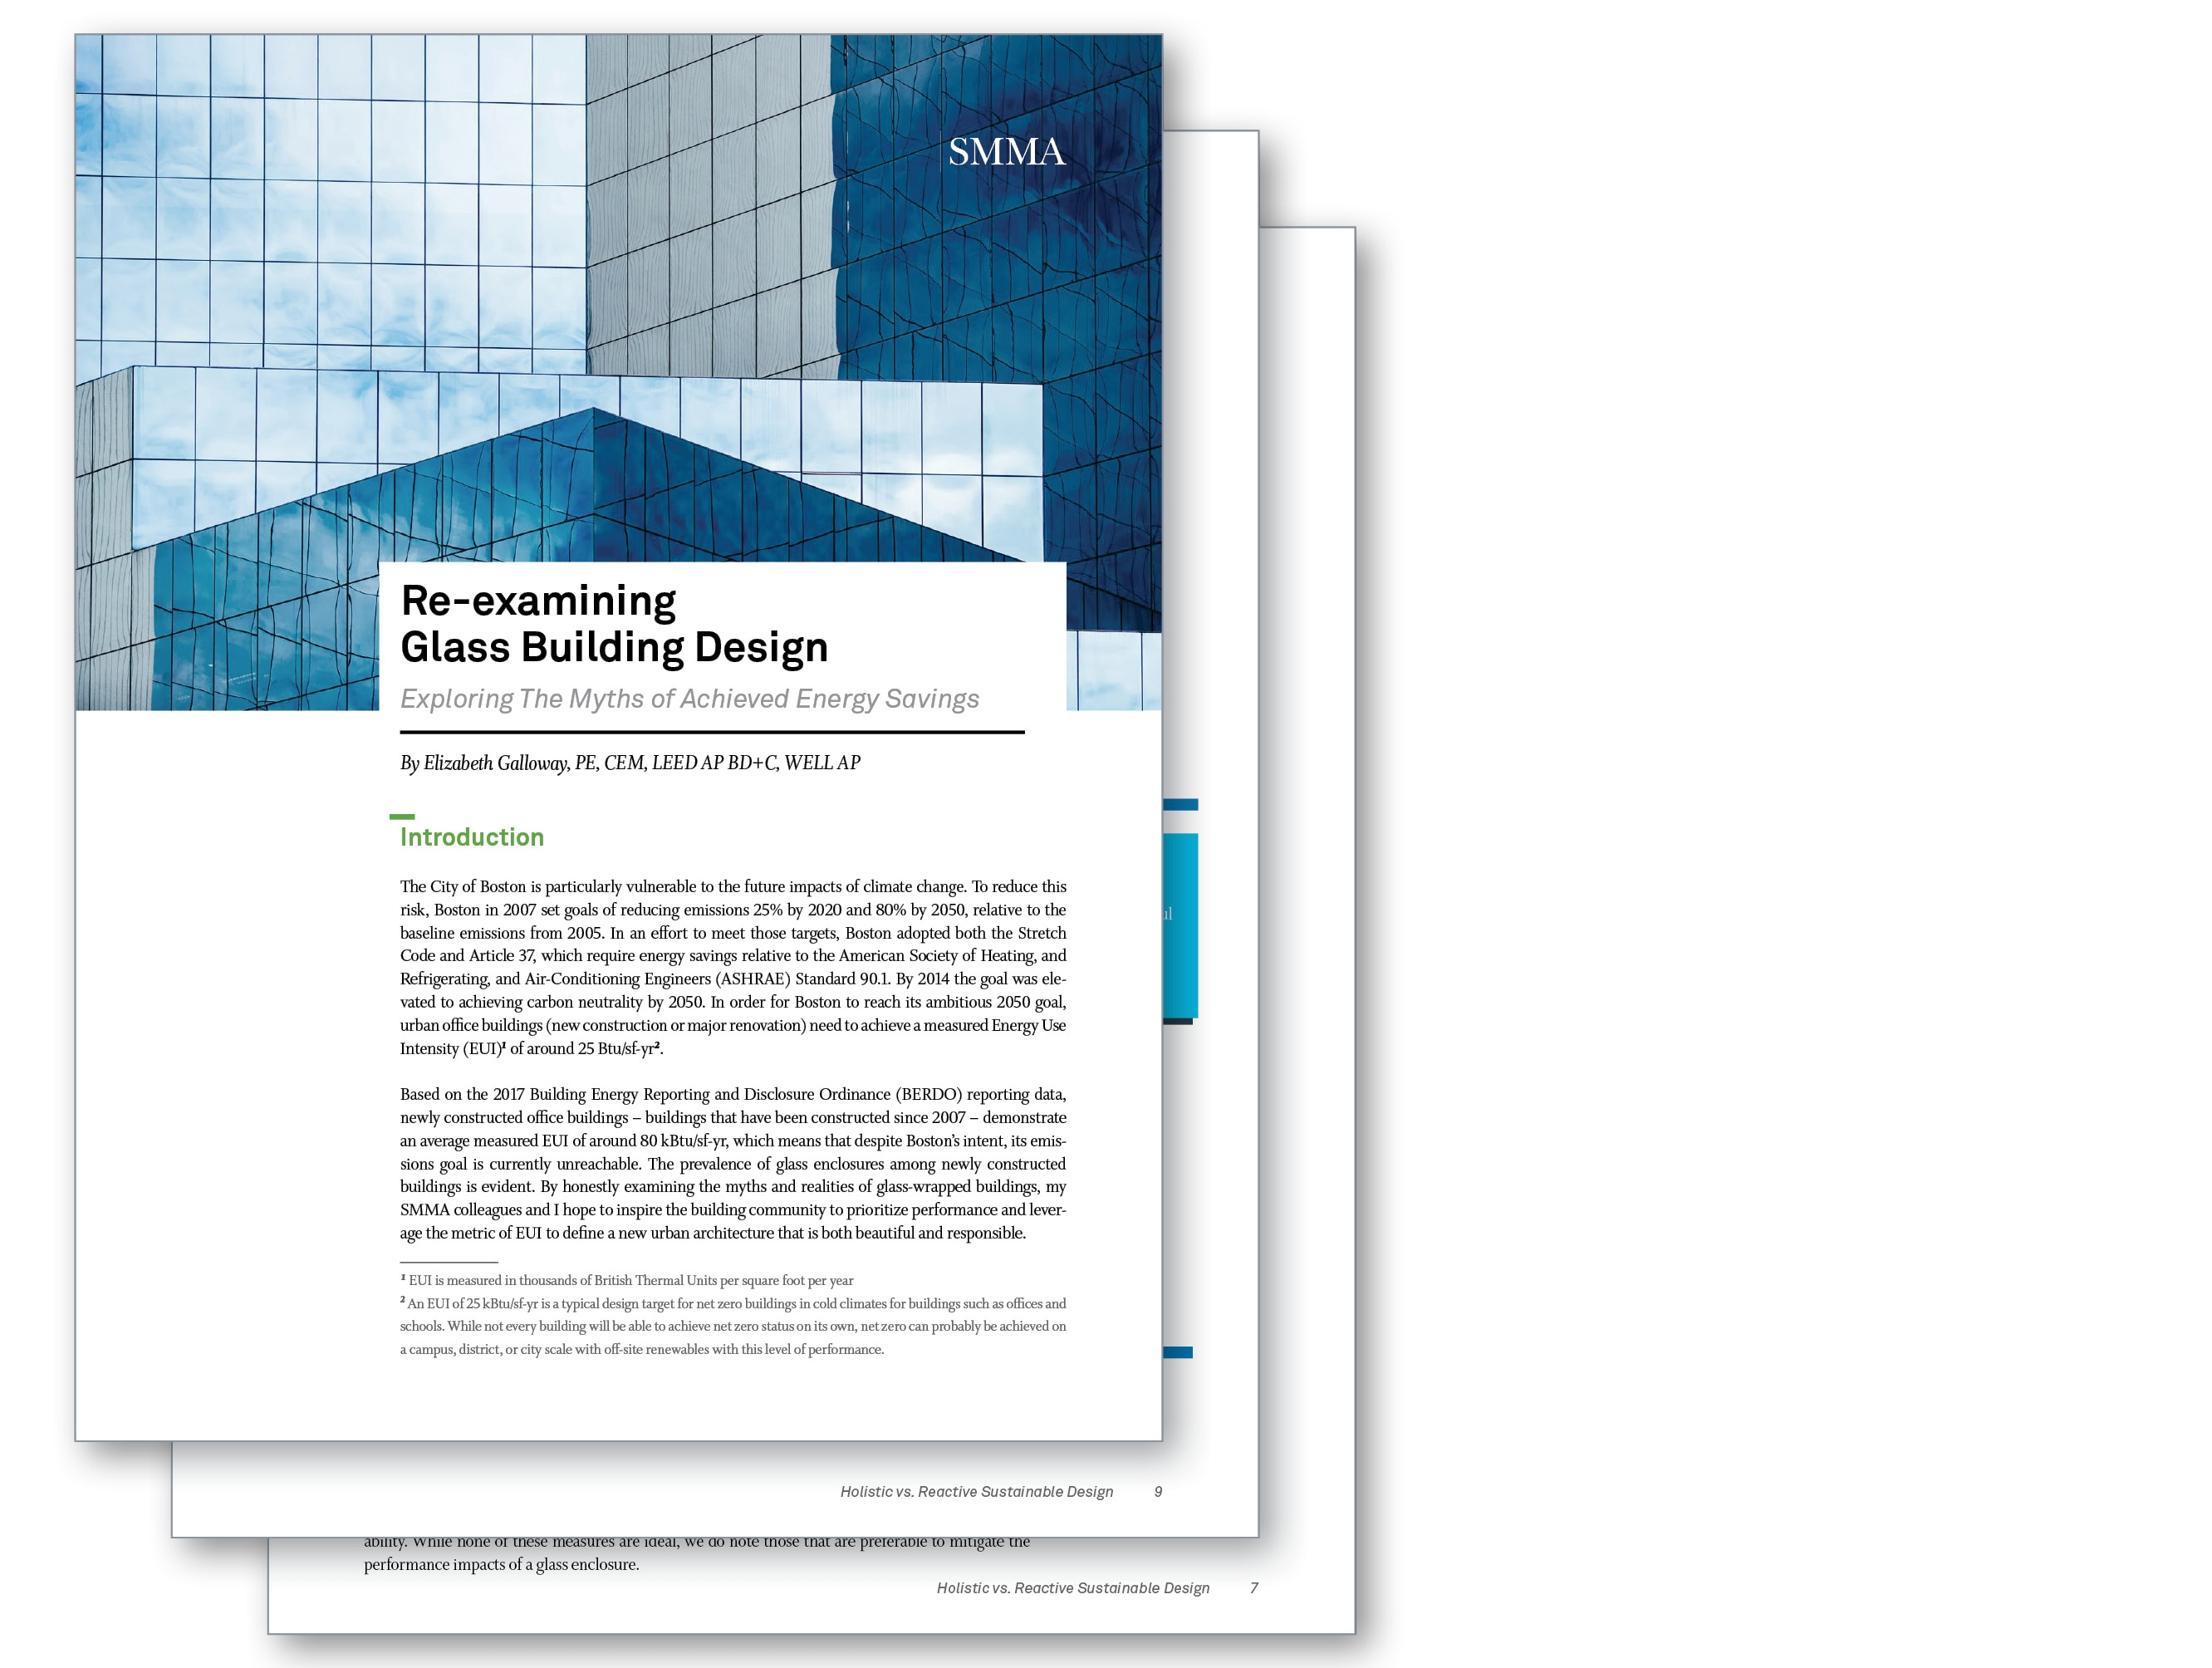 Re-examining Glass Building Design: Exploring the Myths of Achieved Energy Savings